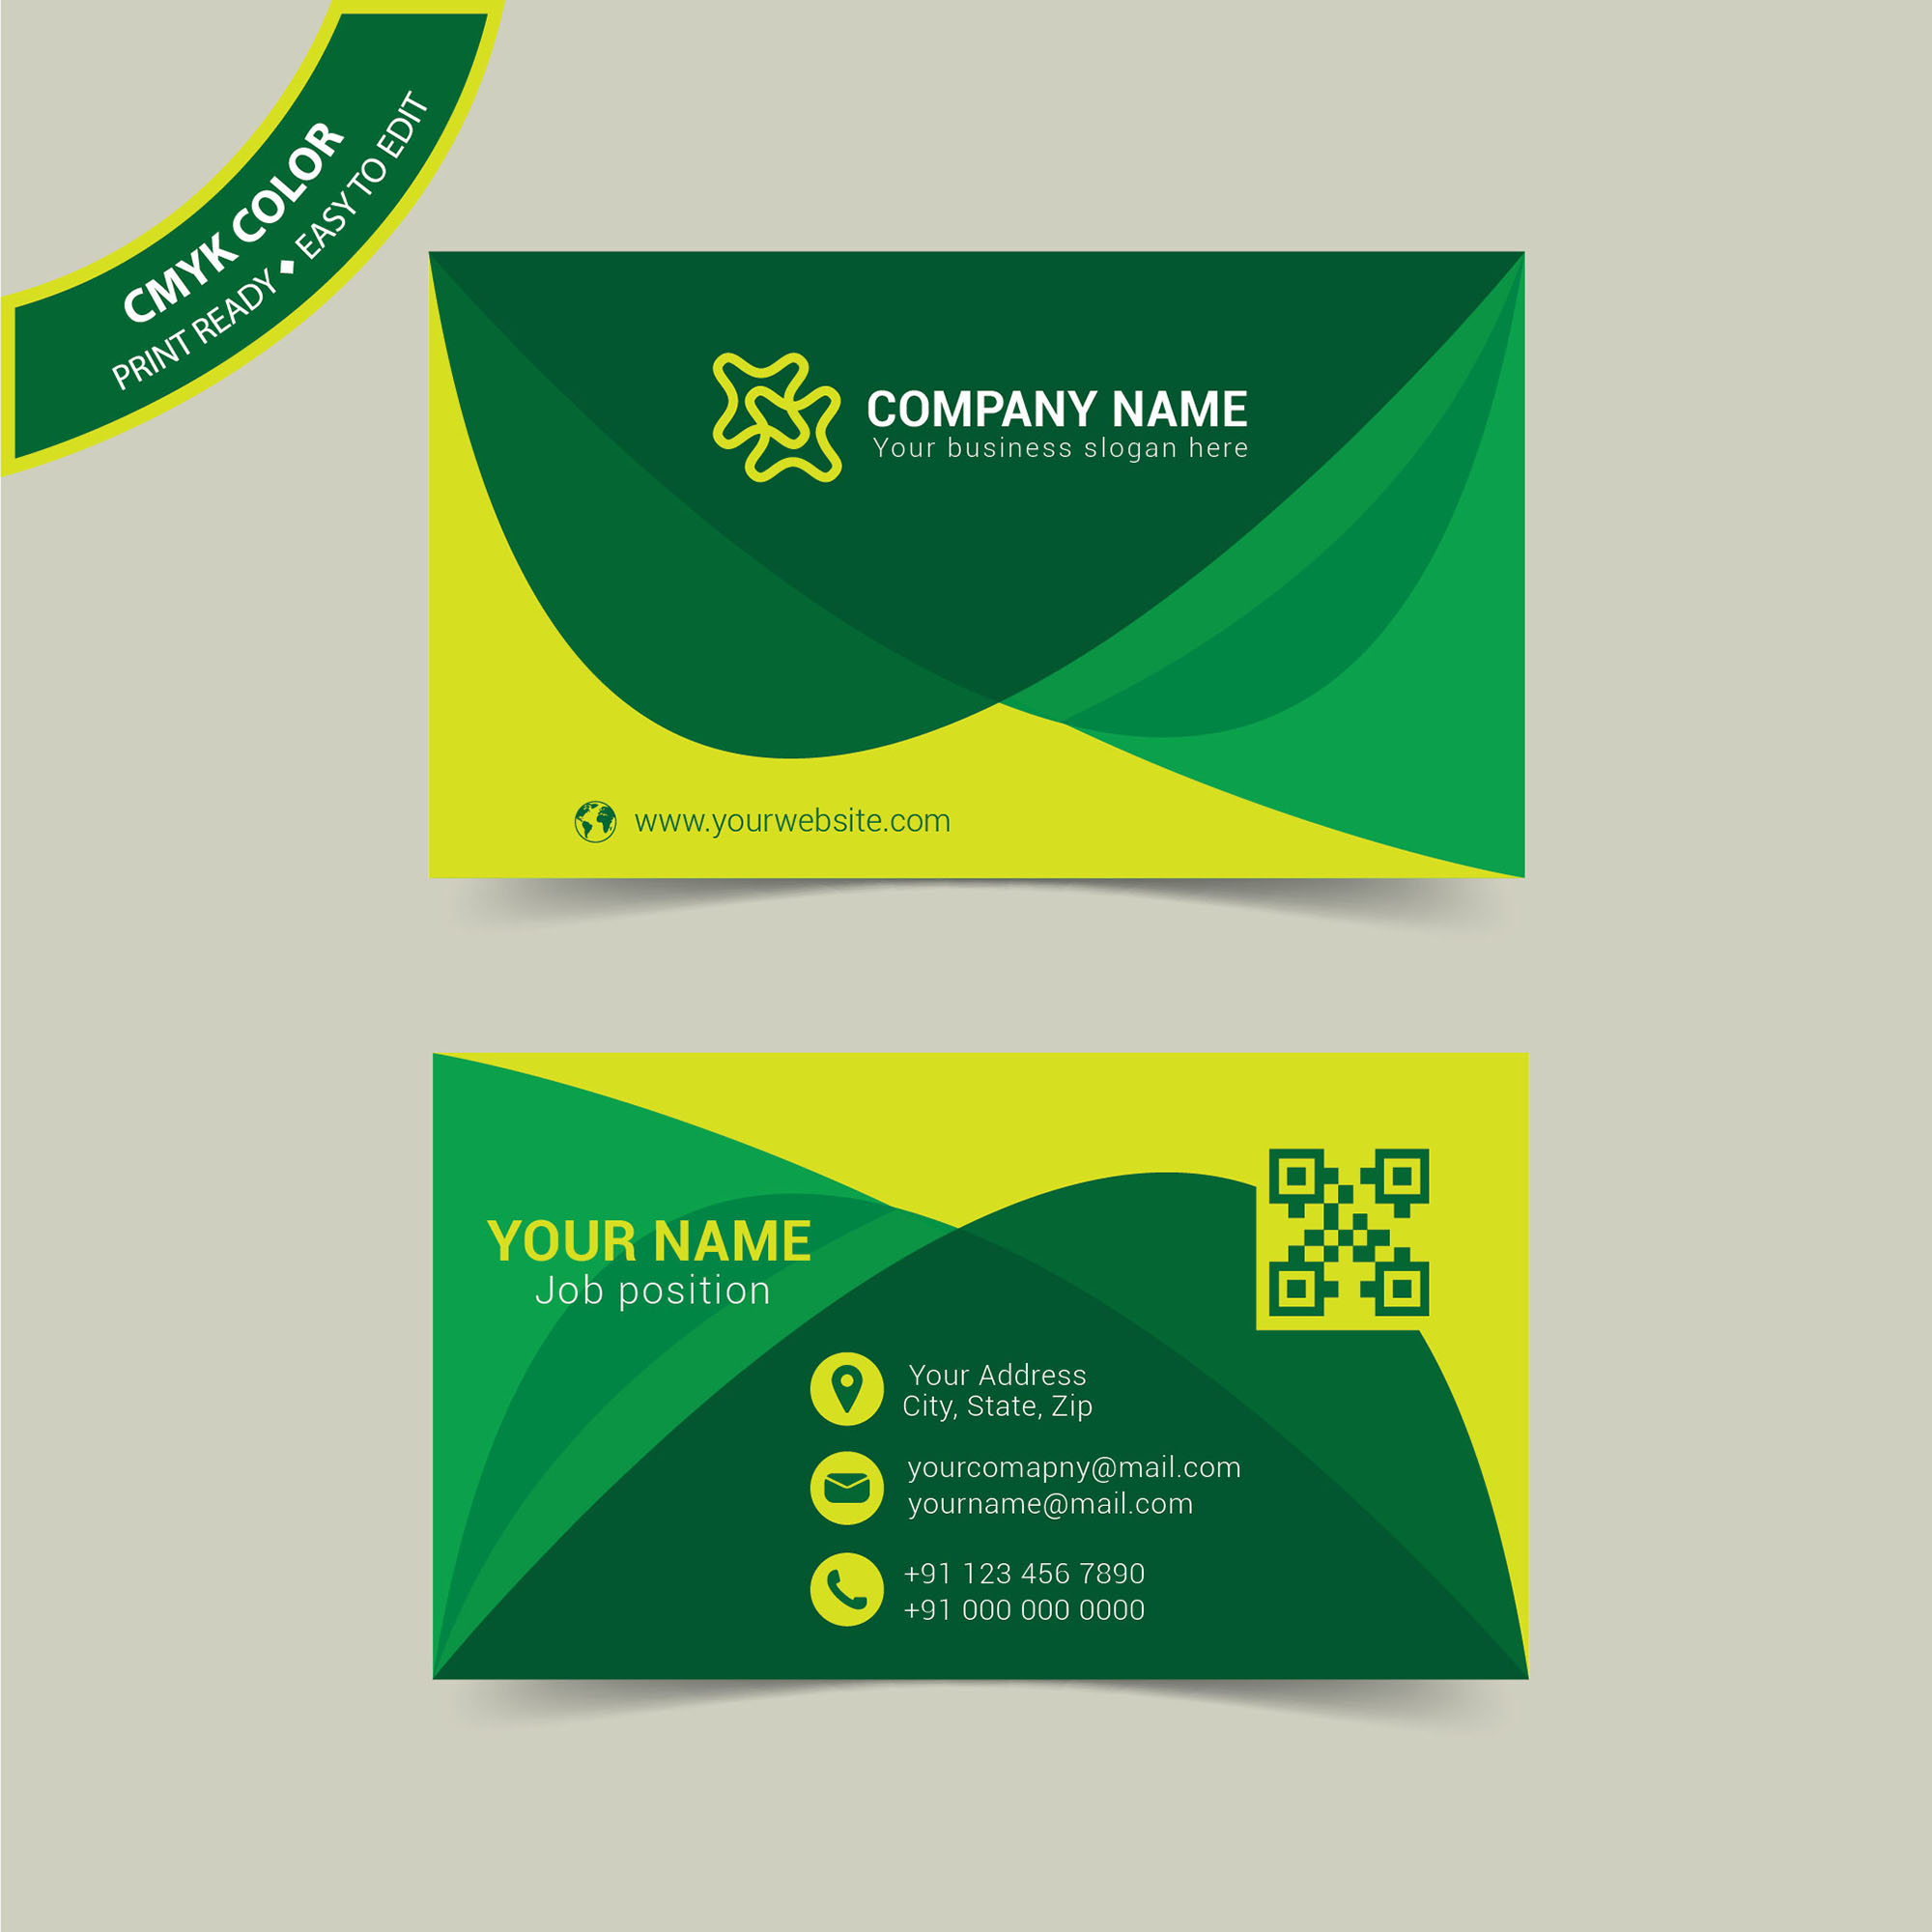 Elegant business card design free download wisxi business card business cards business card design business card template design templates reheart